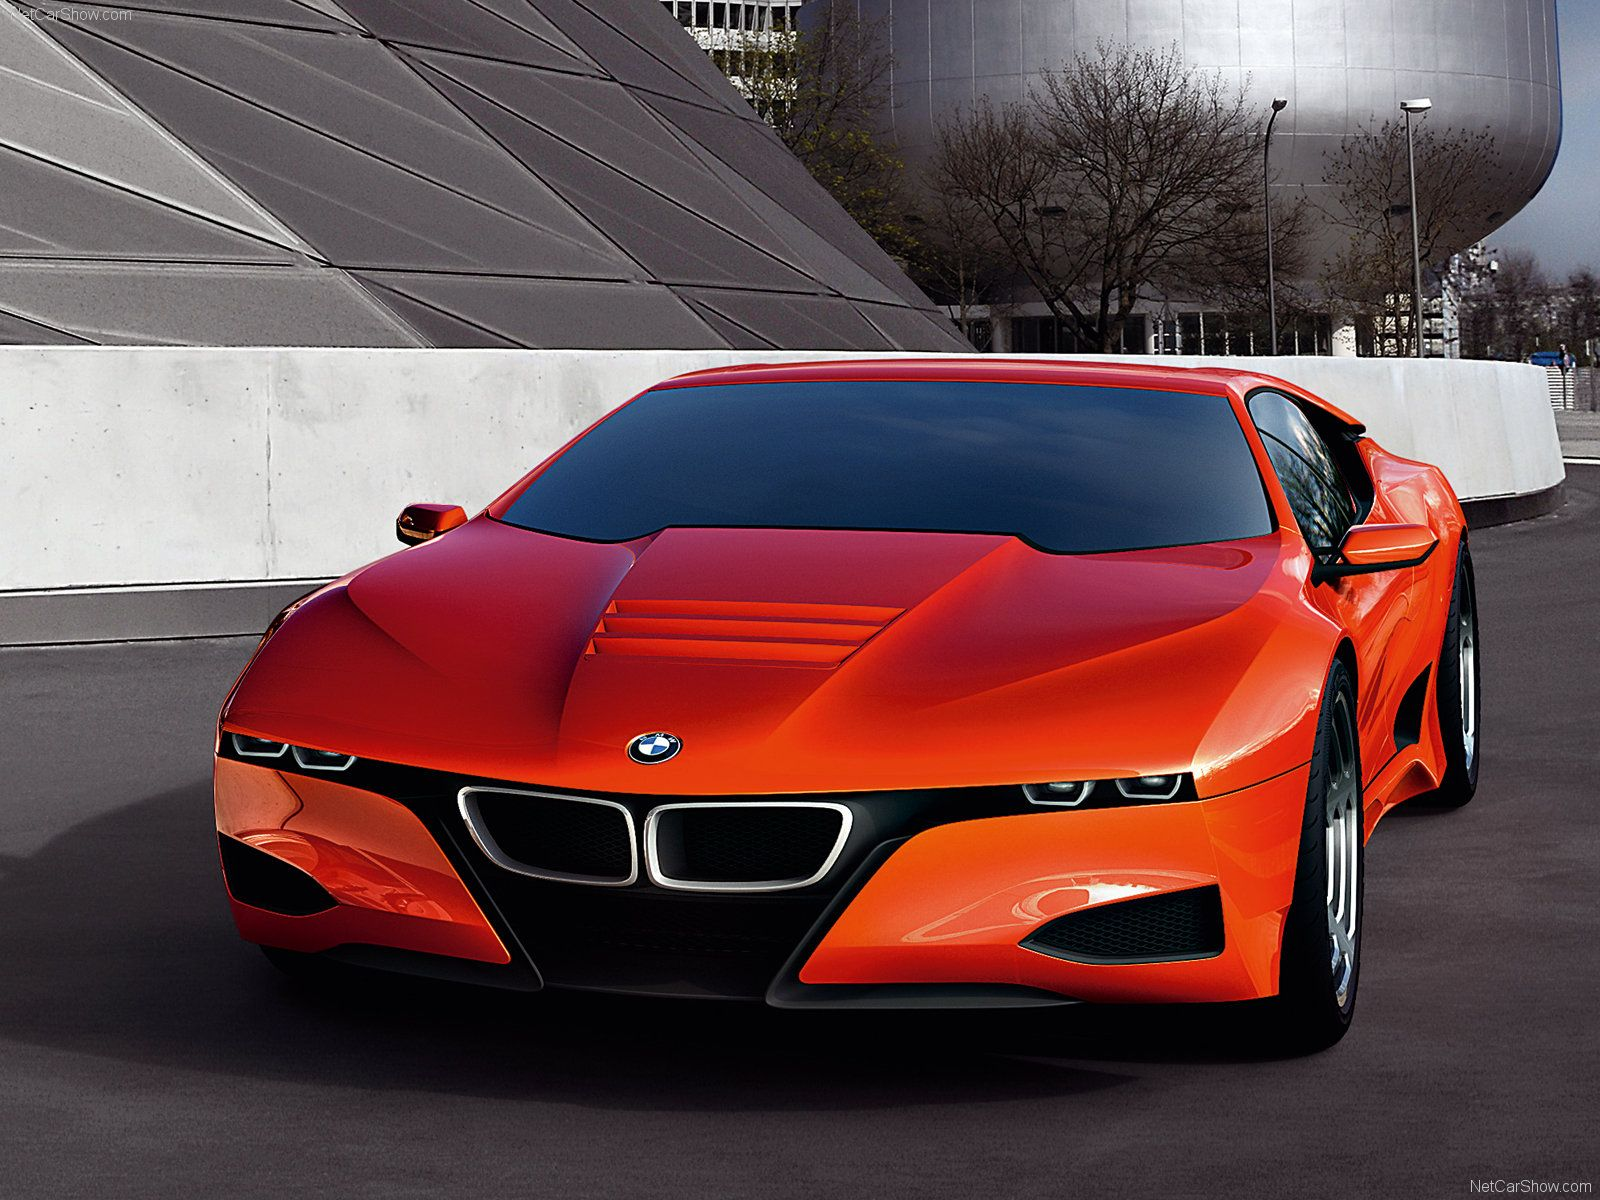 Free Cars Hd Wallpapers Bmw M1 Concept Car Hd Wallpapers